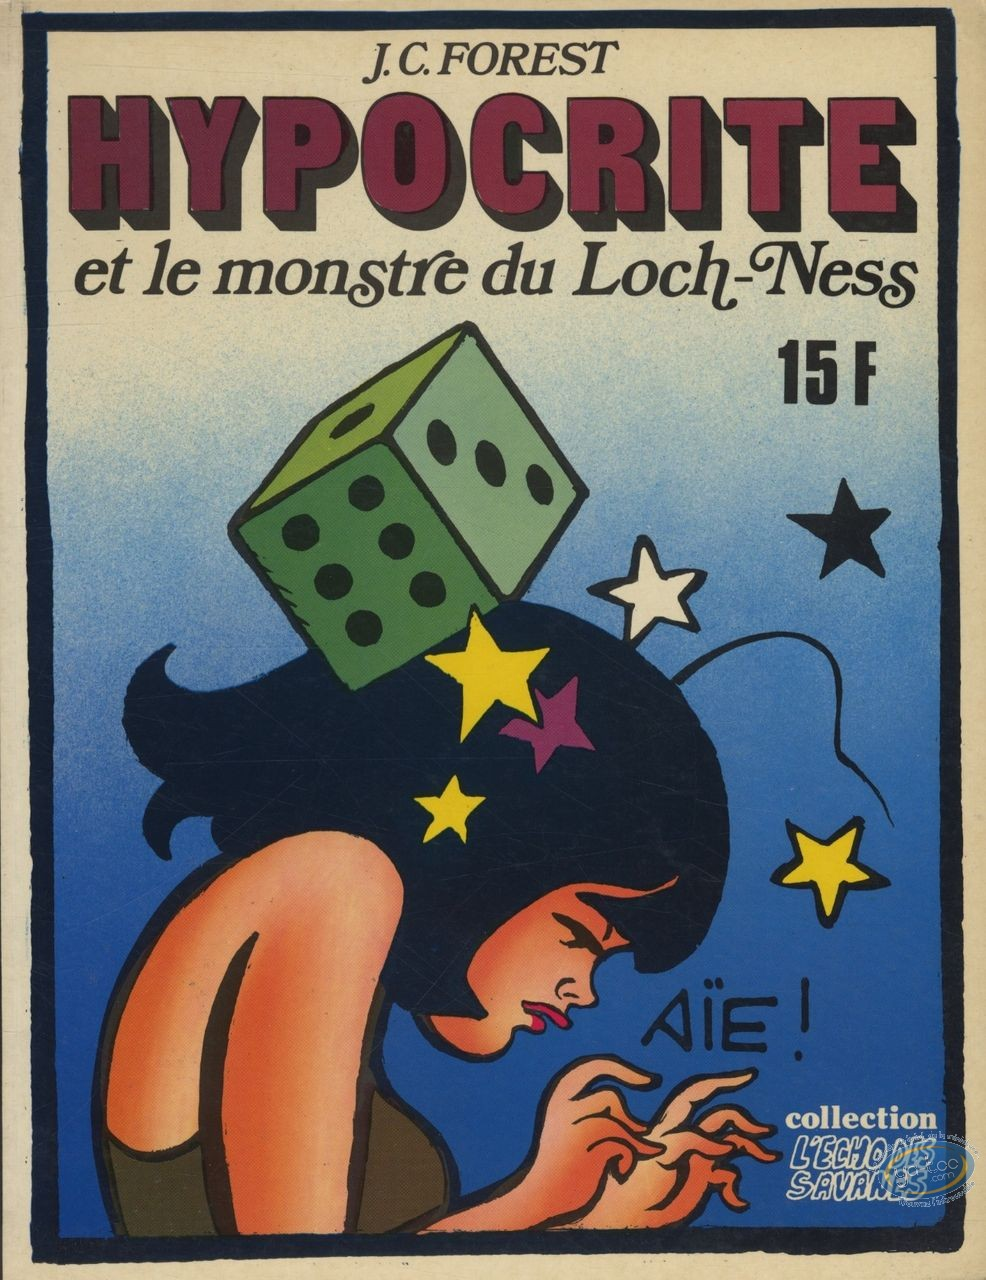 Listed European Comic Books, Hypocrite : Hypocrite et le Monstre du Loch-Ness